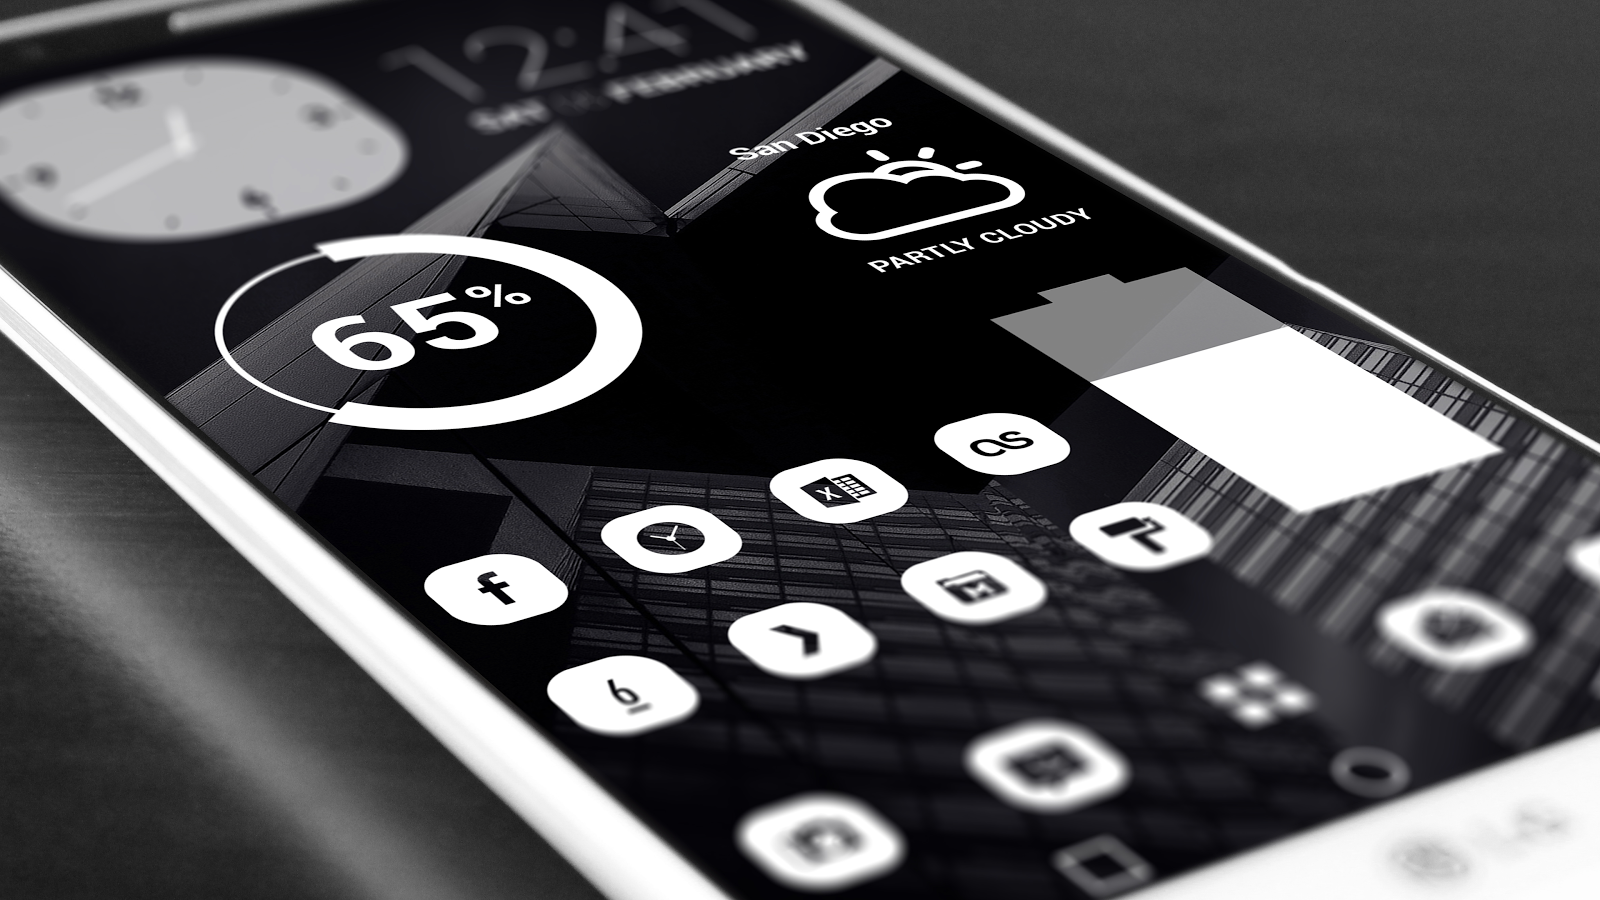 Pasty - White Icon Pack (Pro Version) Screenshot 8